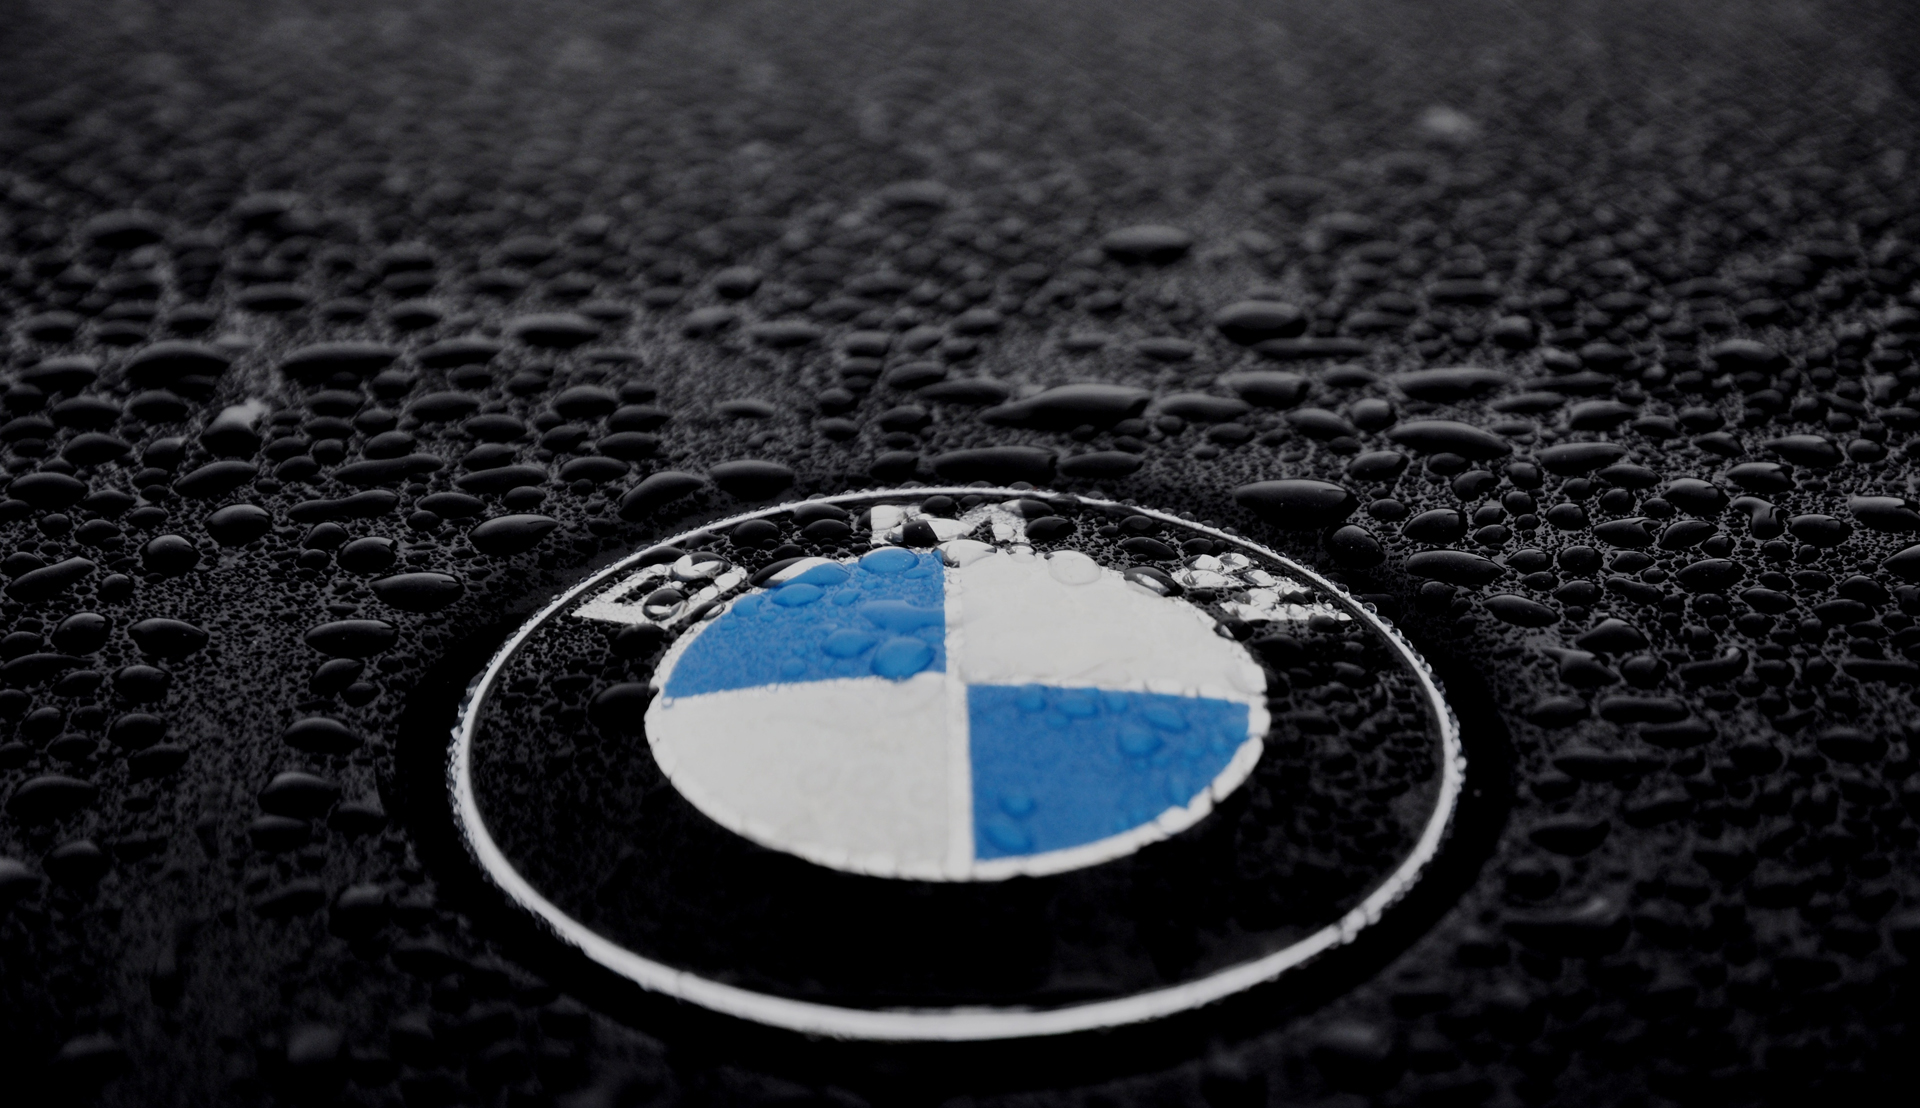 bmw logo desktop background 366